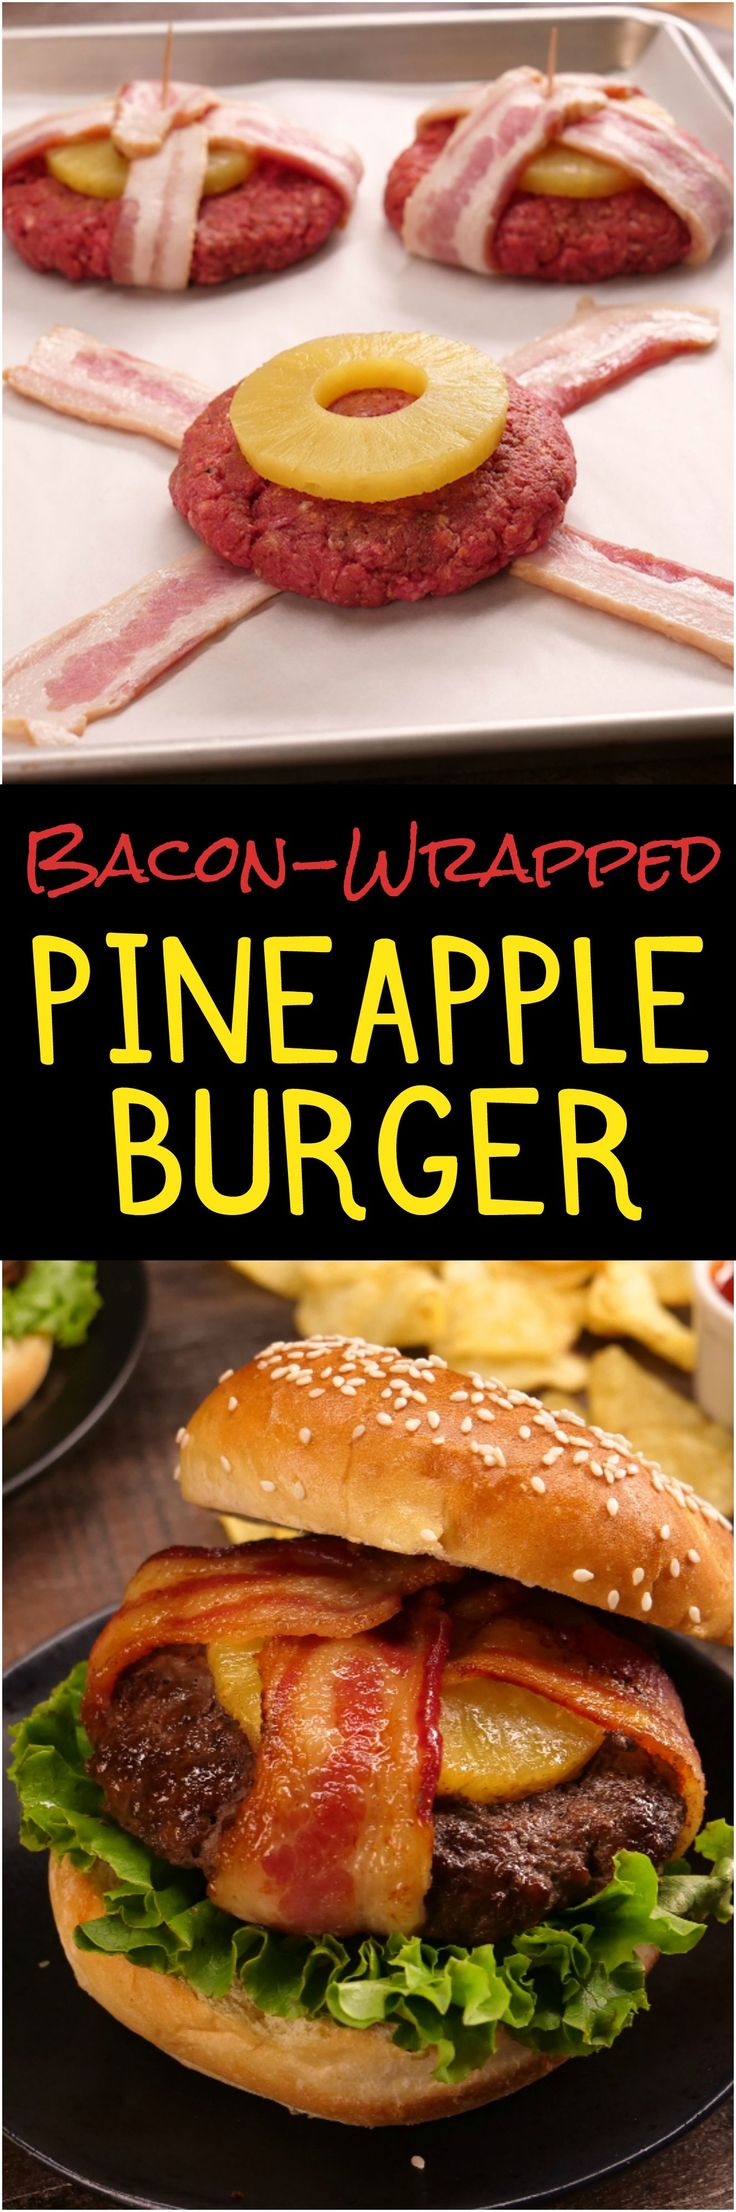 "You know what they say: ""Good things come in bacon-wrapped packages."" This sweet & smoky BBQ burger topped with caramelized pineapple is such a good thing."